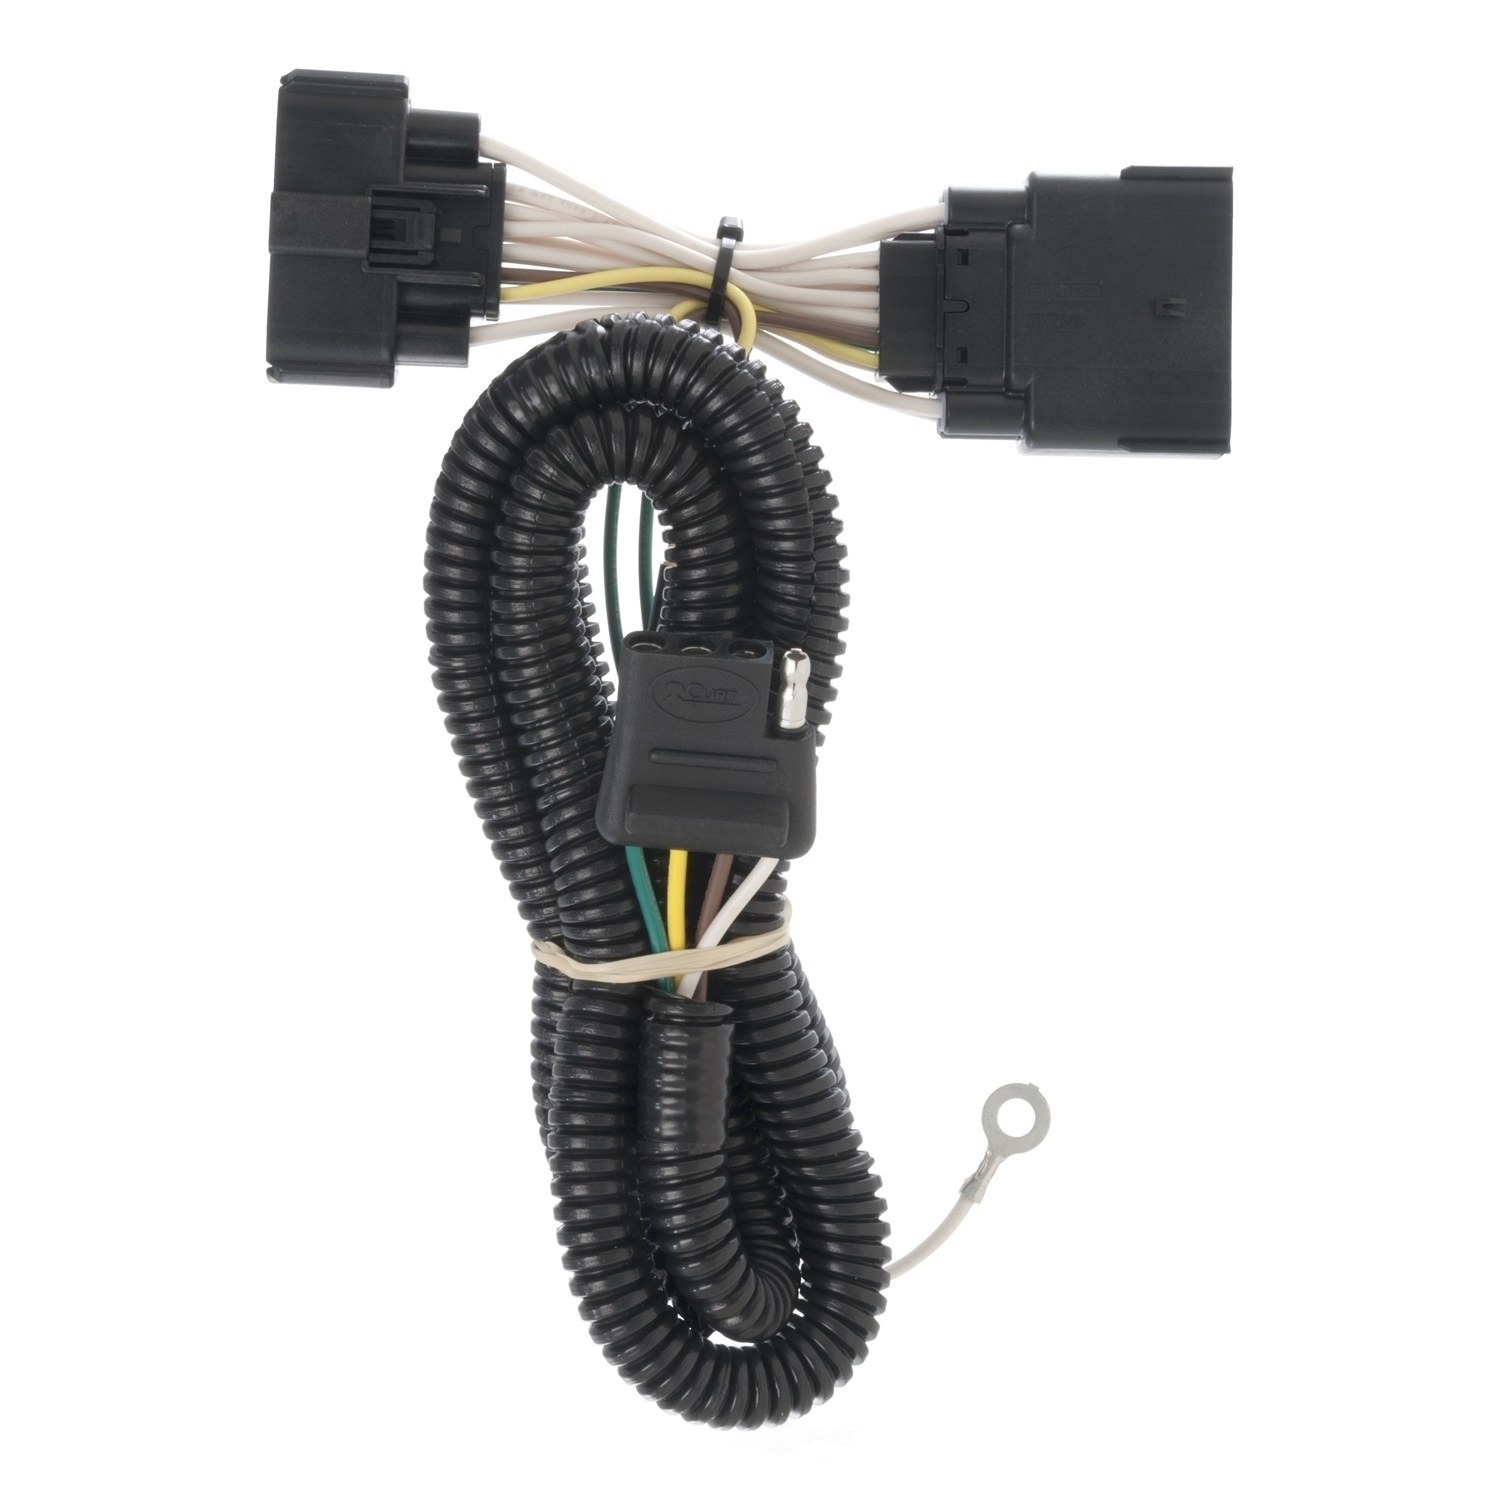 CURT MFG INC. - Vehicle To Trailer Connector W/harness - CUR 56172